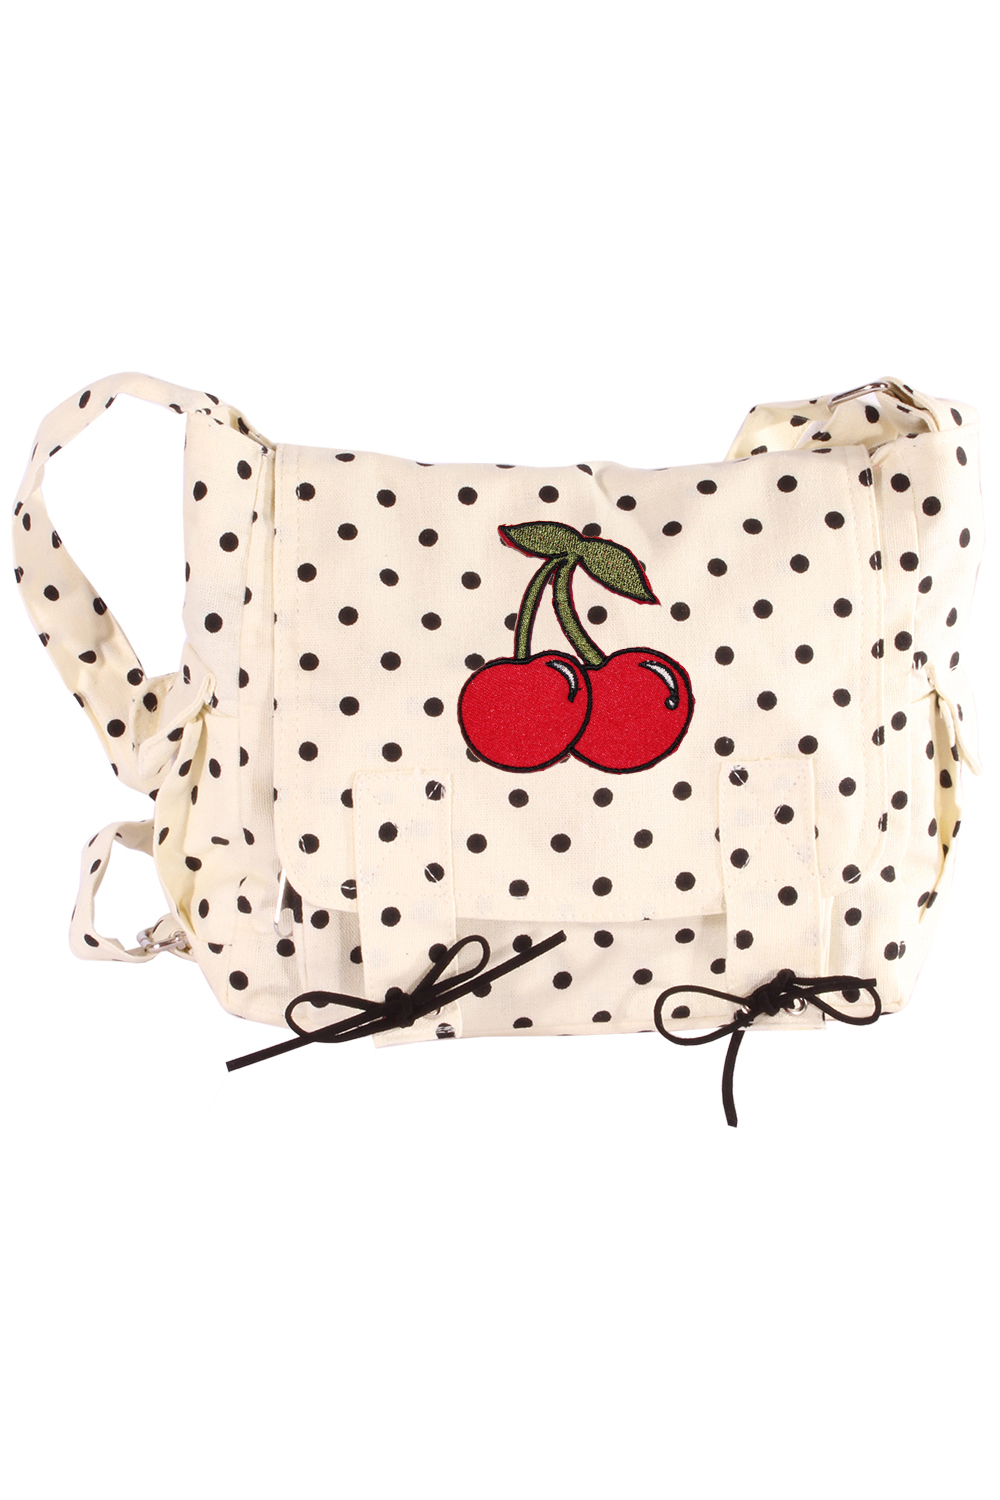 Military pin up POLKA DOTS Kirsche rockabilly Cherry Handtasche creme